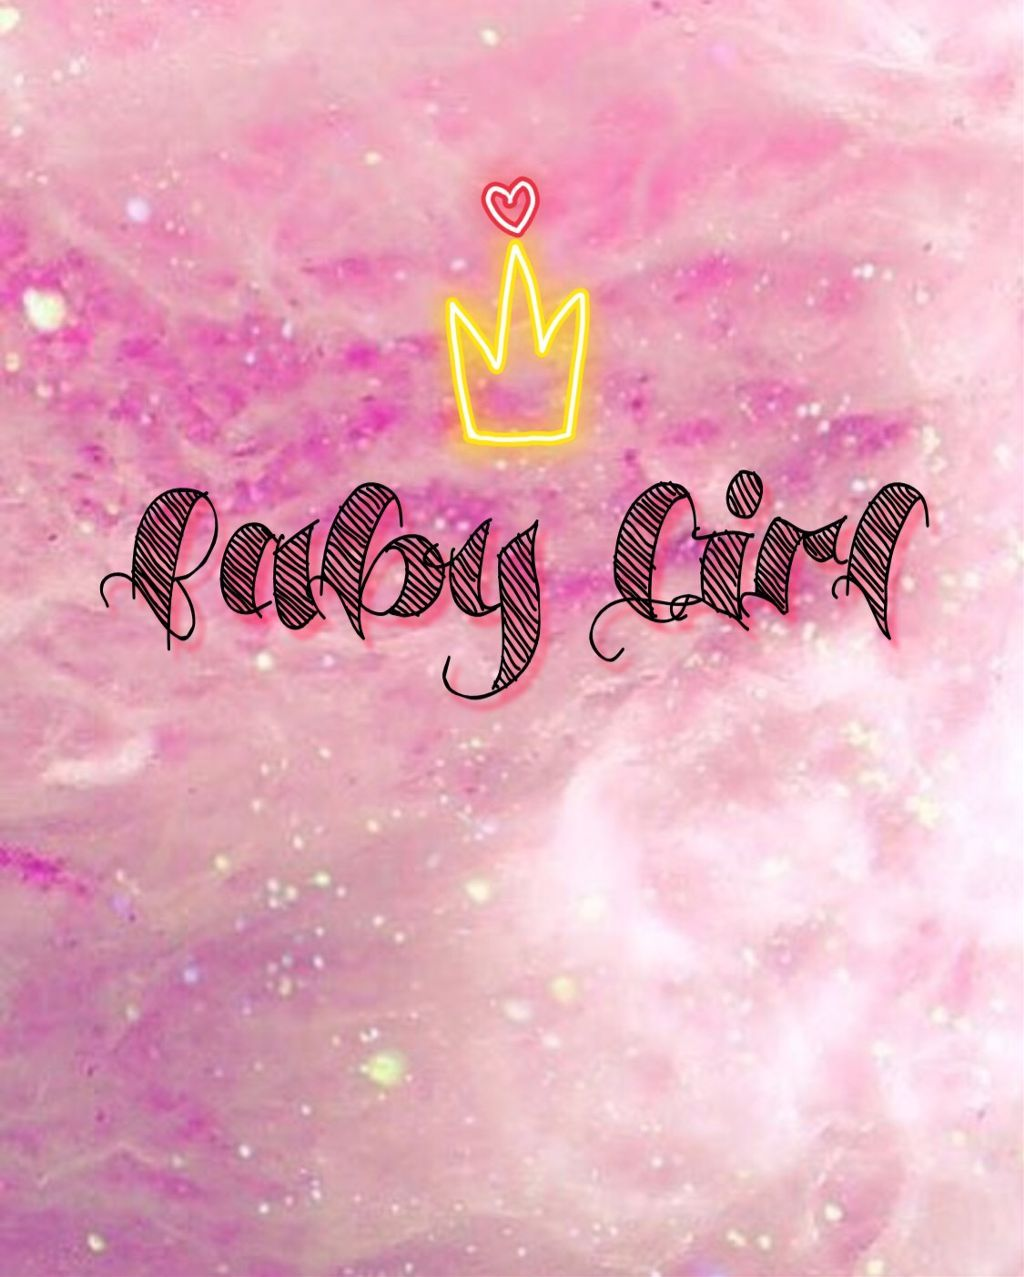 1024x1277 freetoedit baby babygirl girly girl queen wallpaper bac.